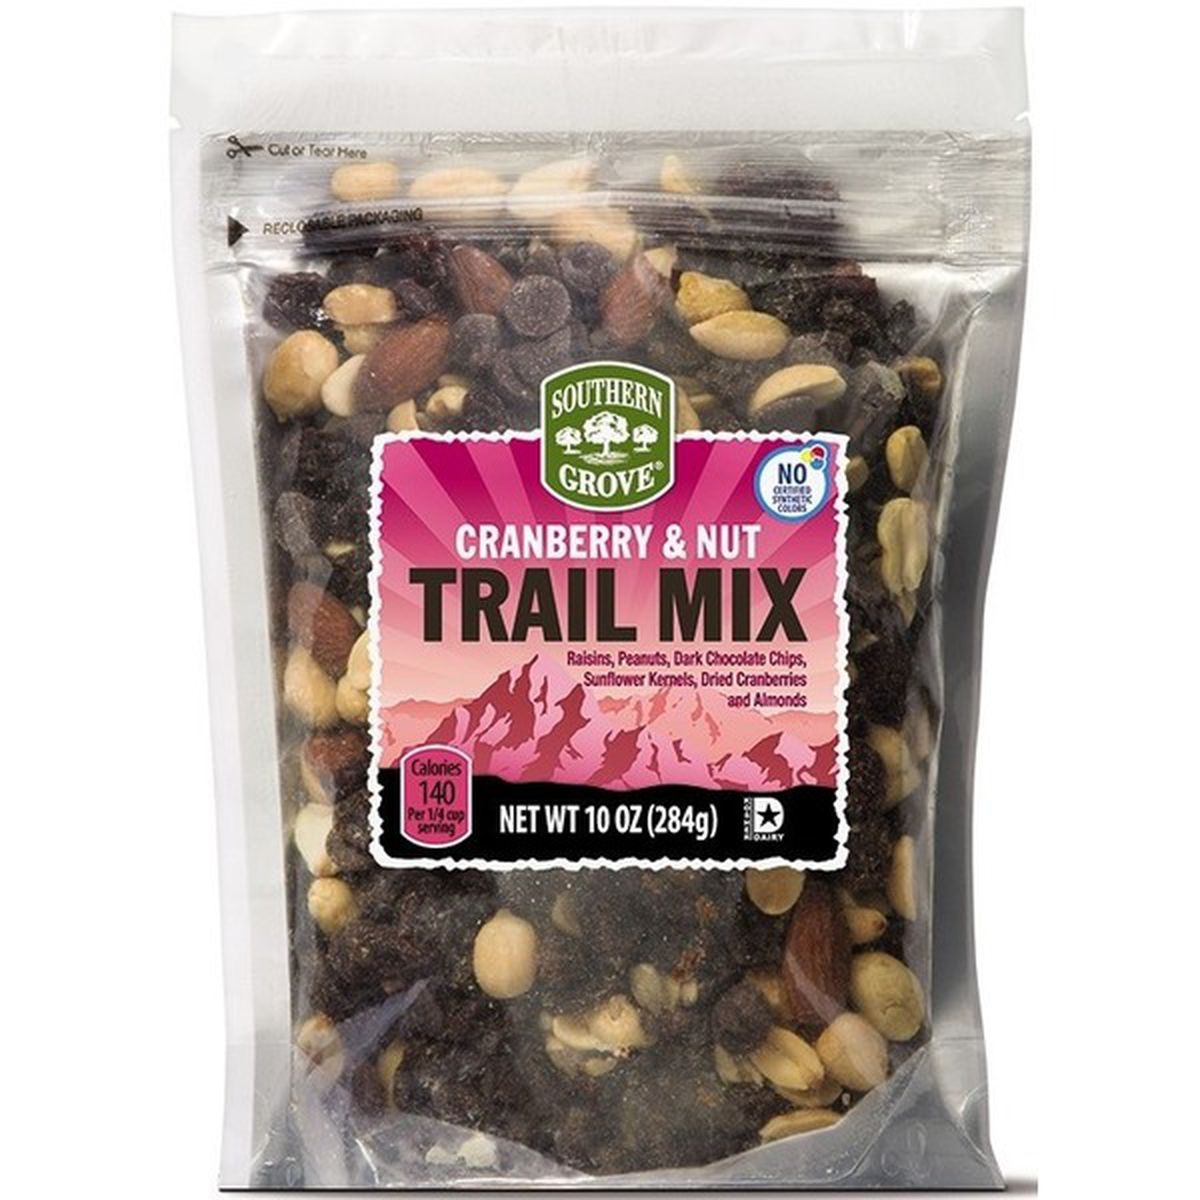 Cranberry and Nut Trail Mix